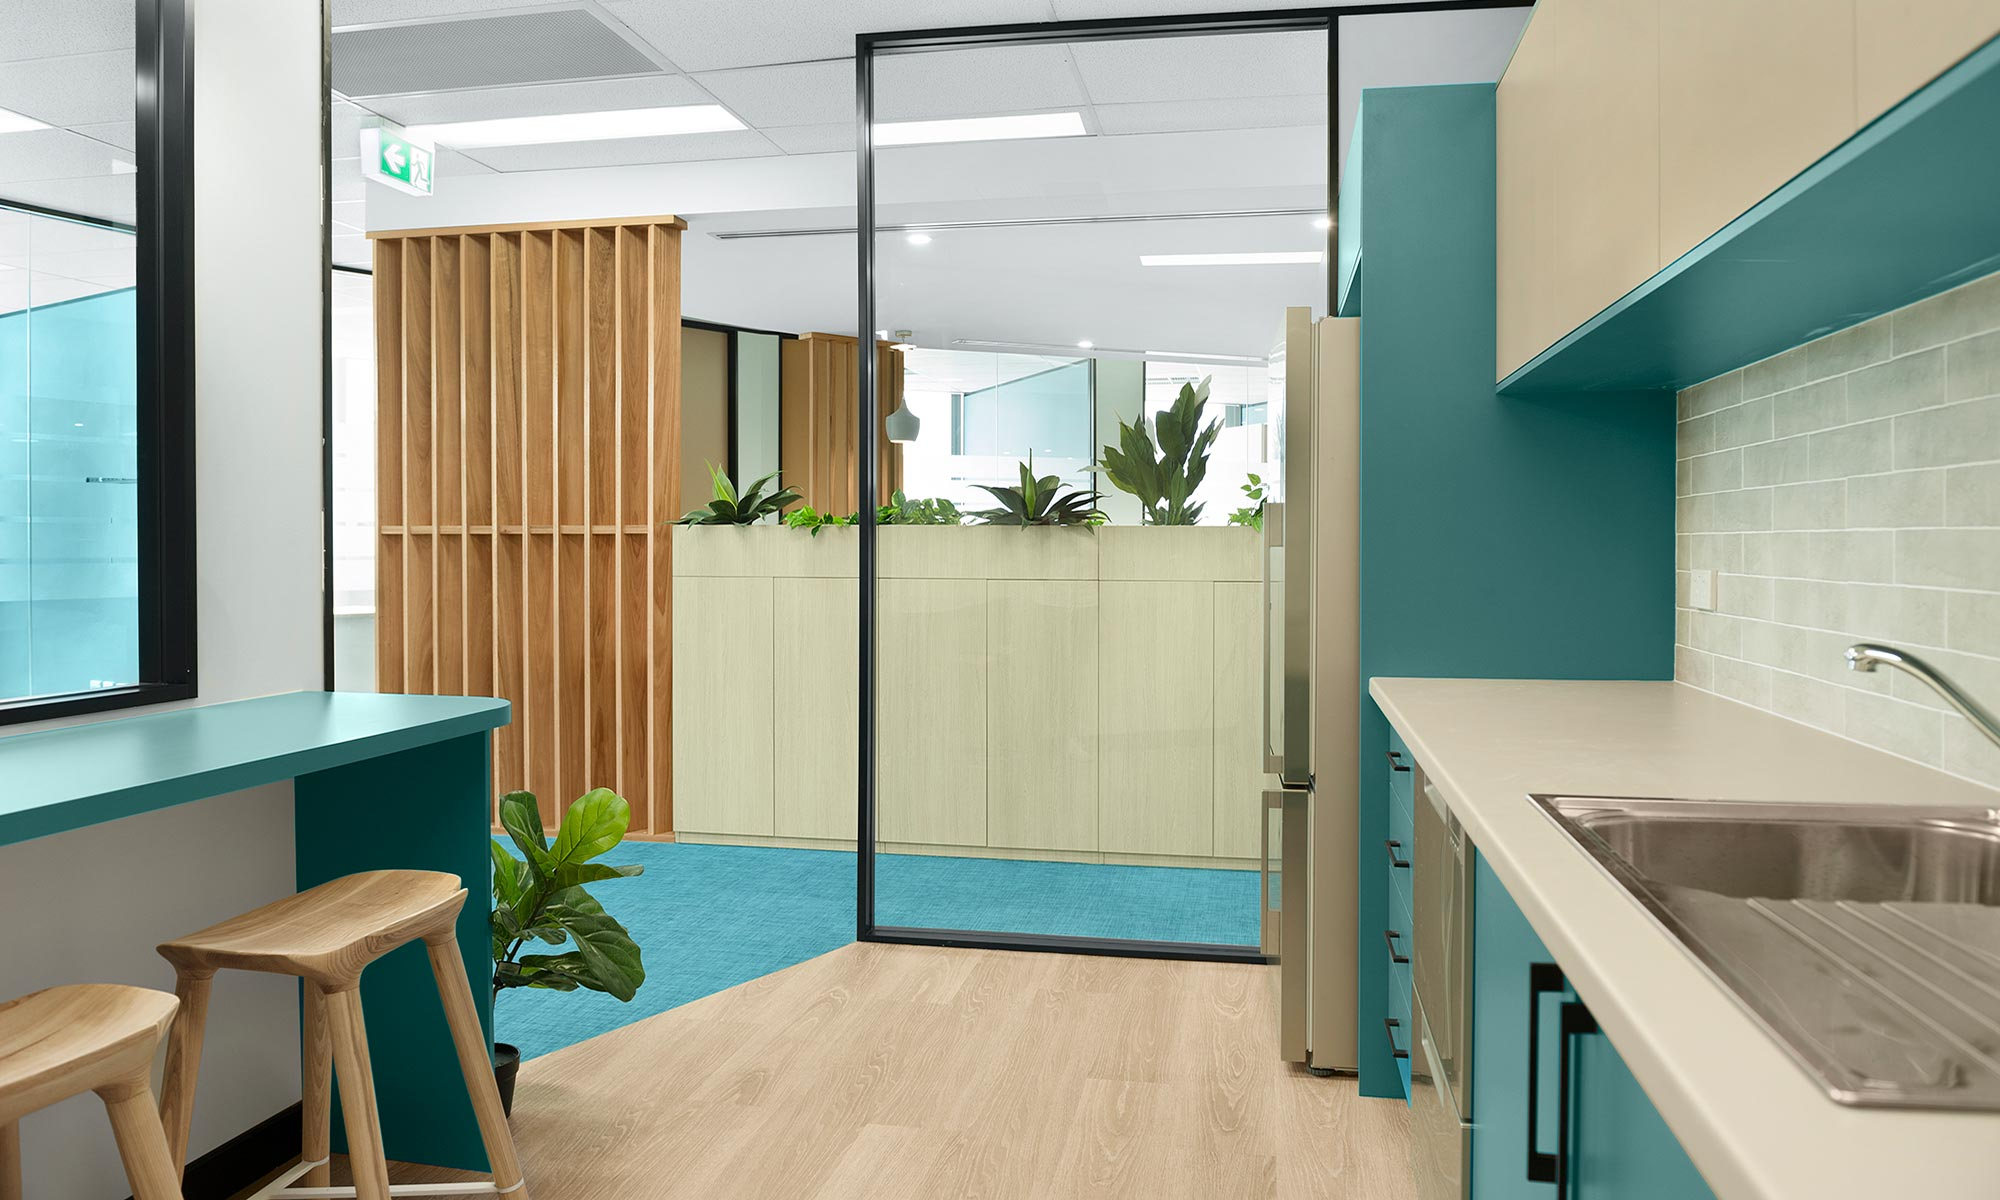 klm accountants office design fitout newcastle 05